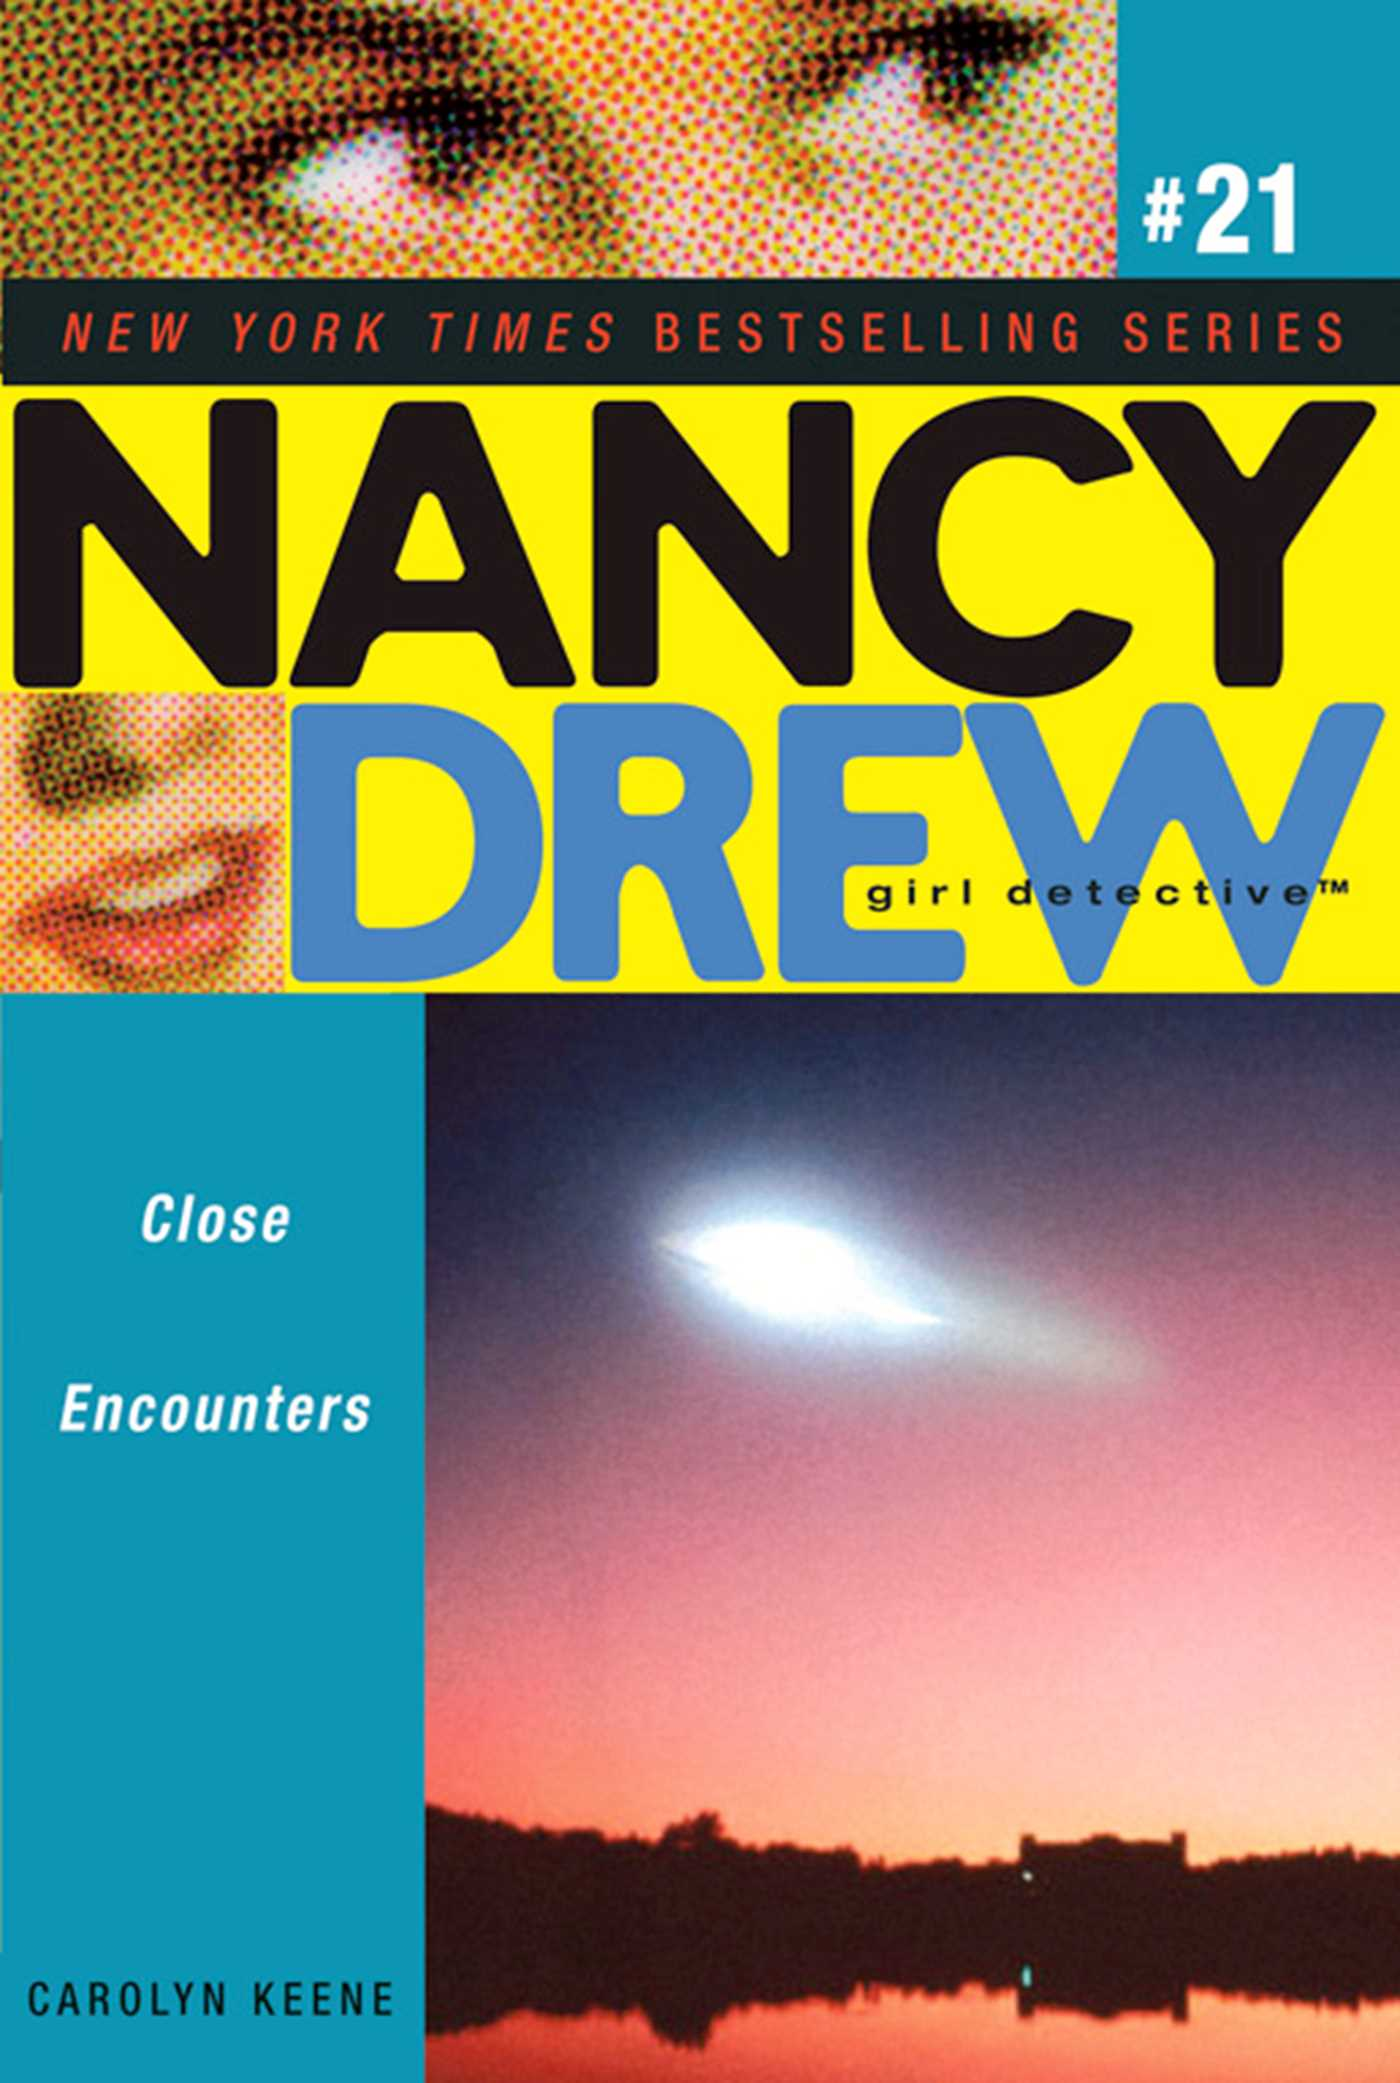 Close encounters ebook by carolyn keene official publisher page close encounters 9781442465428 hr fandeluxe Document